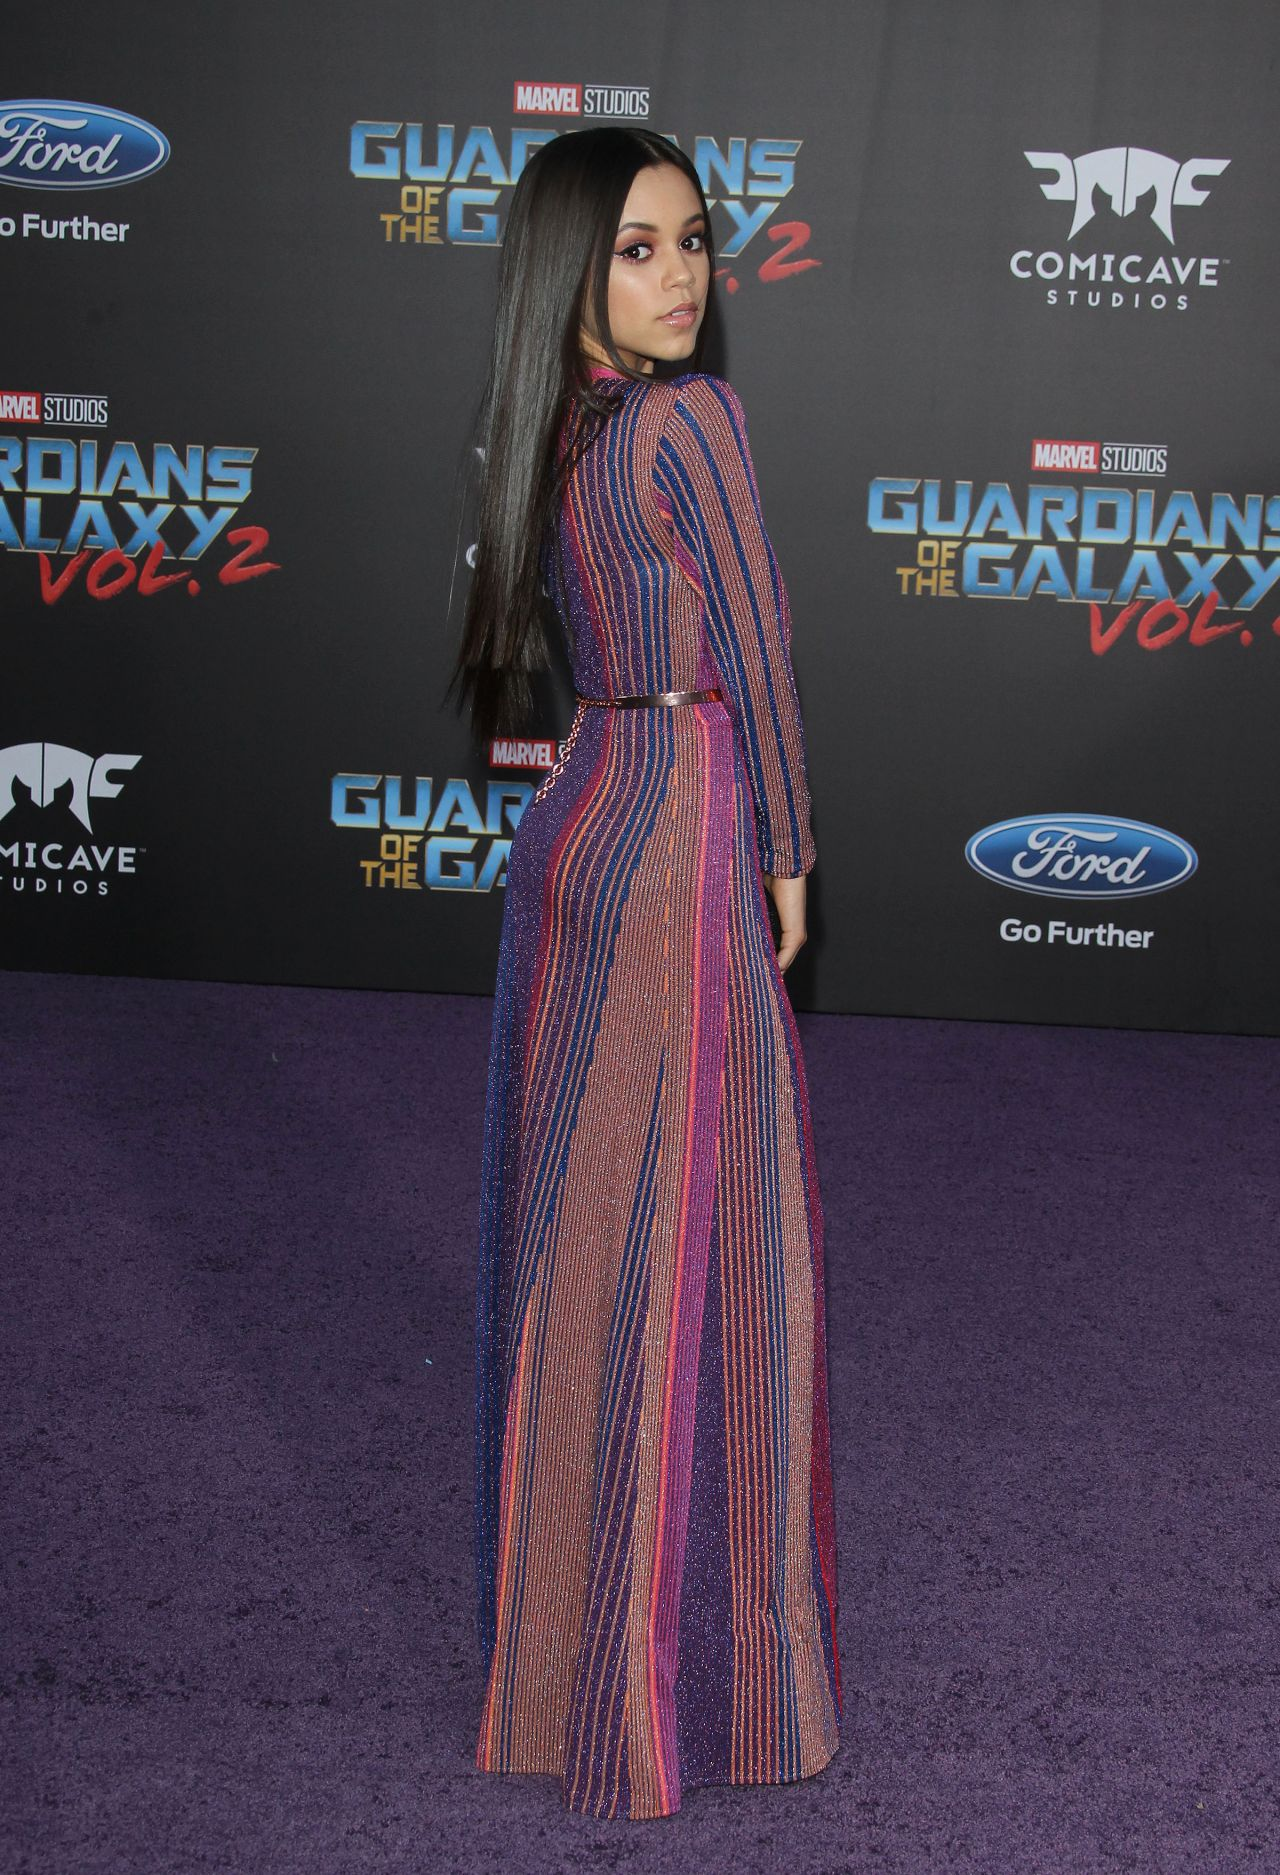 Jenna Ortega - Guardians Of The Galaxy Vol 2 Premiere In Los Angeles-4048